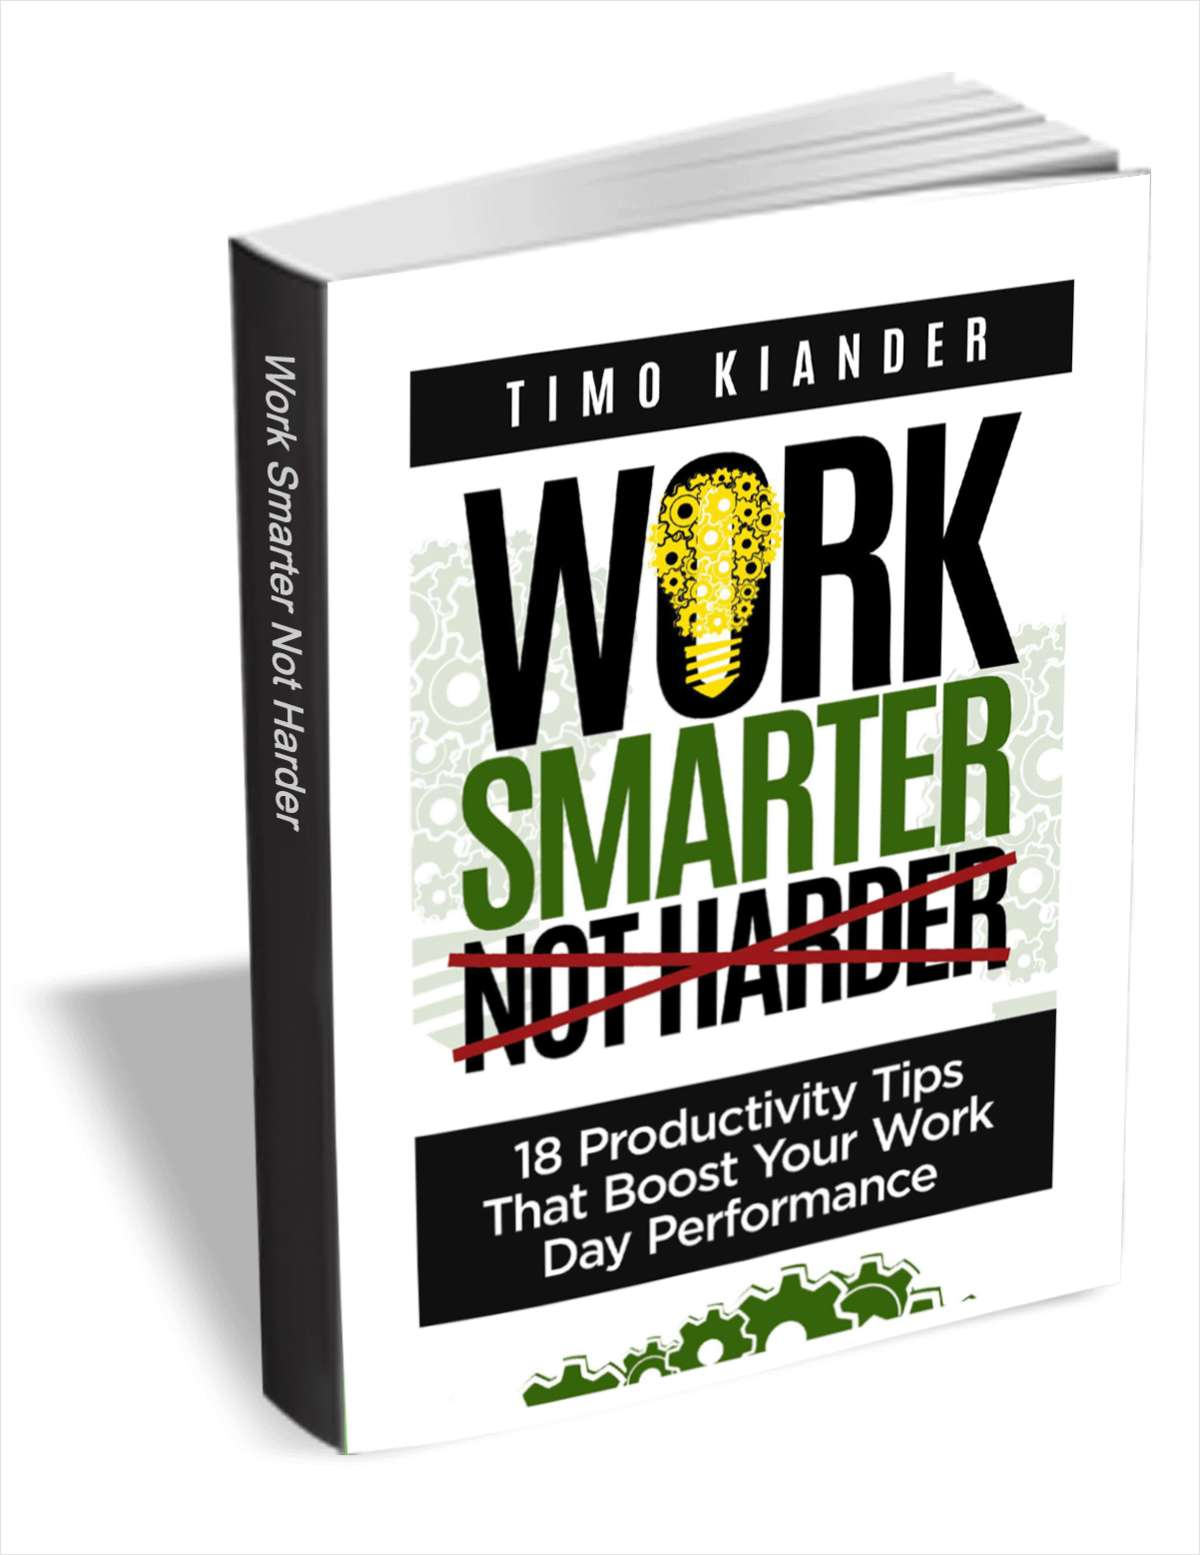 Work Smarter Not Harder: 18 Productivity Tips that Boost your Work Day Performance (valued at $.99)